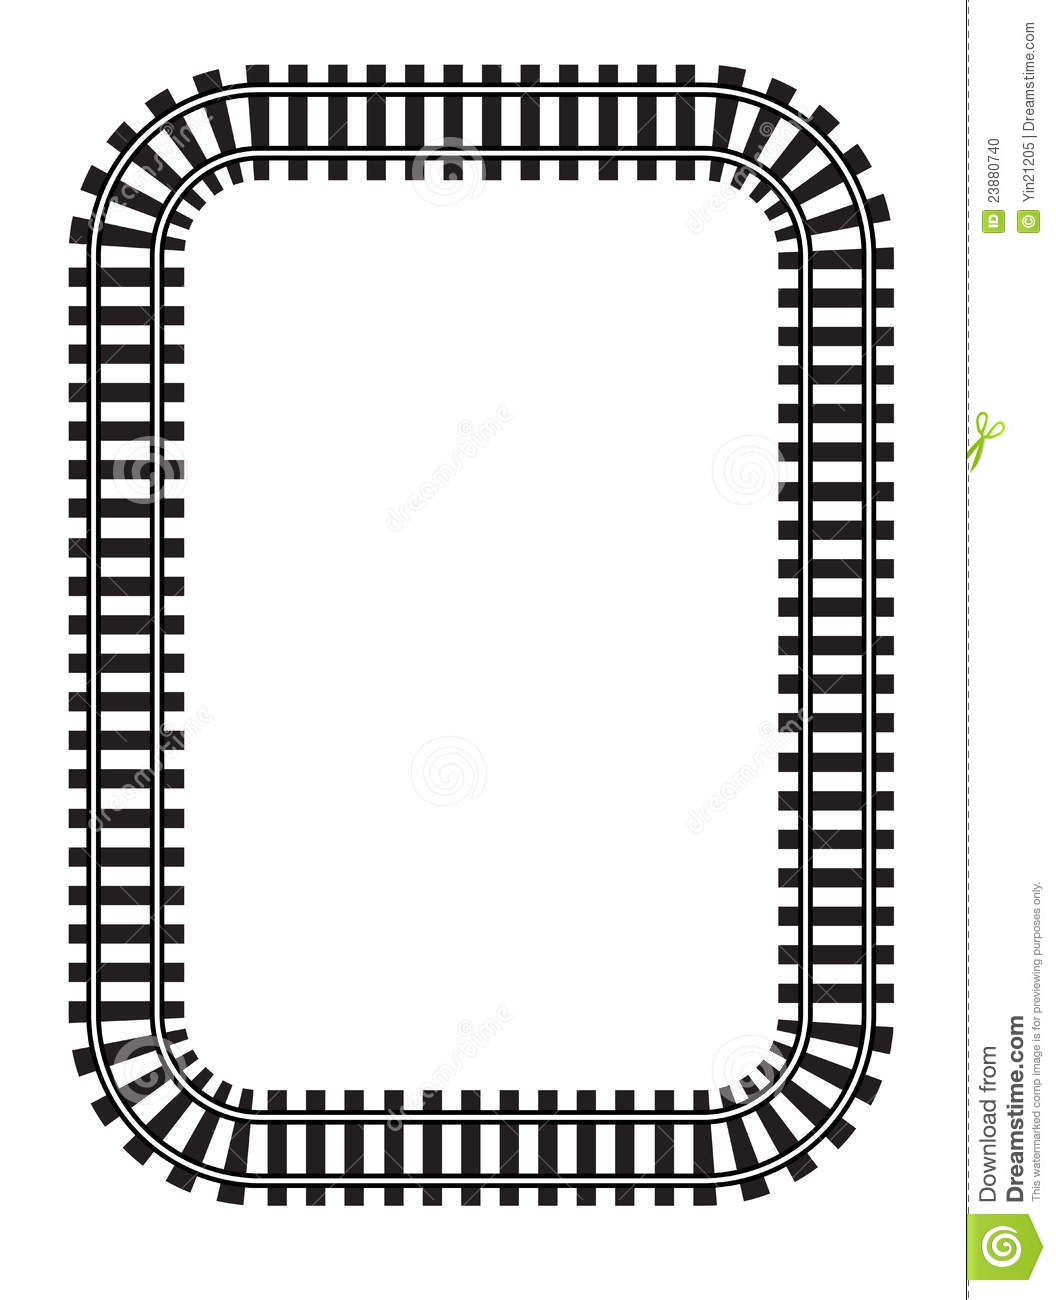 Train clipart curved #8